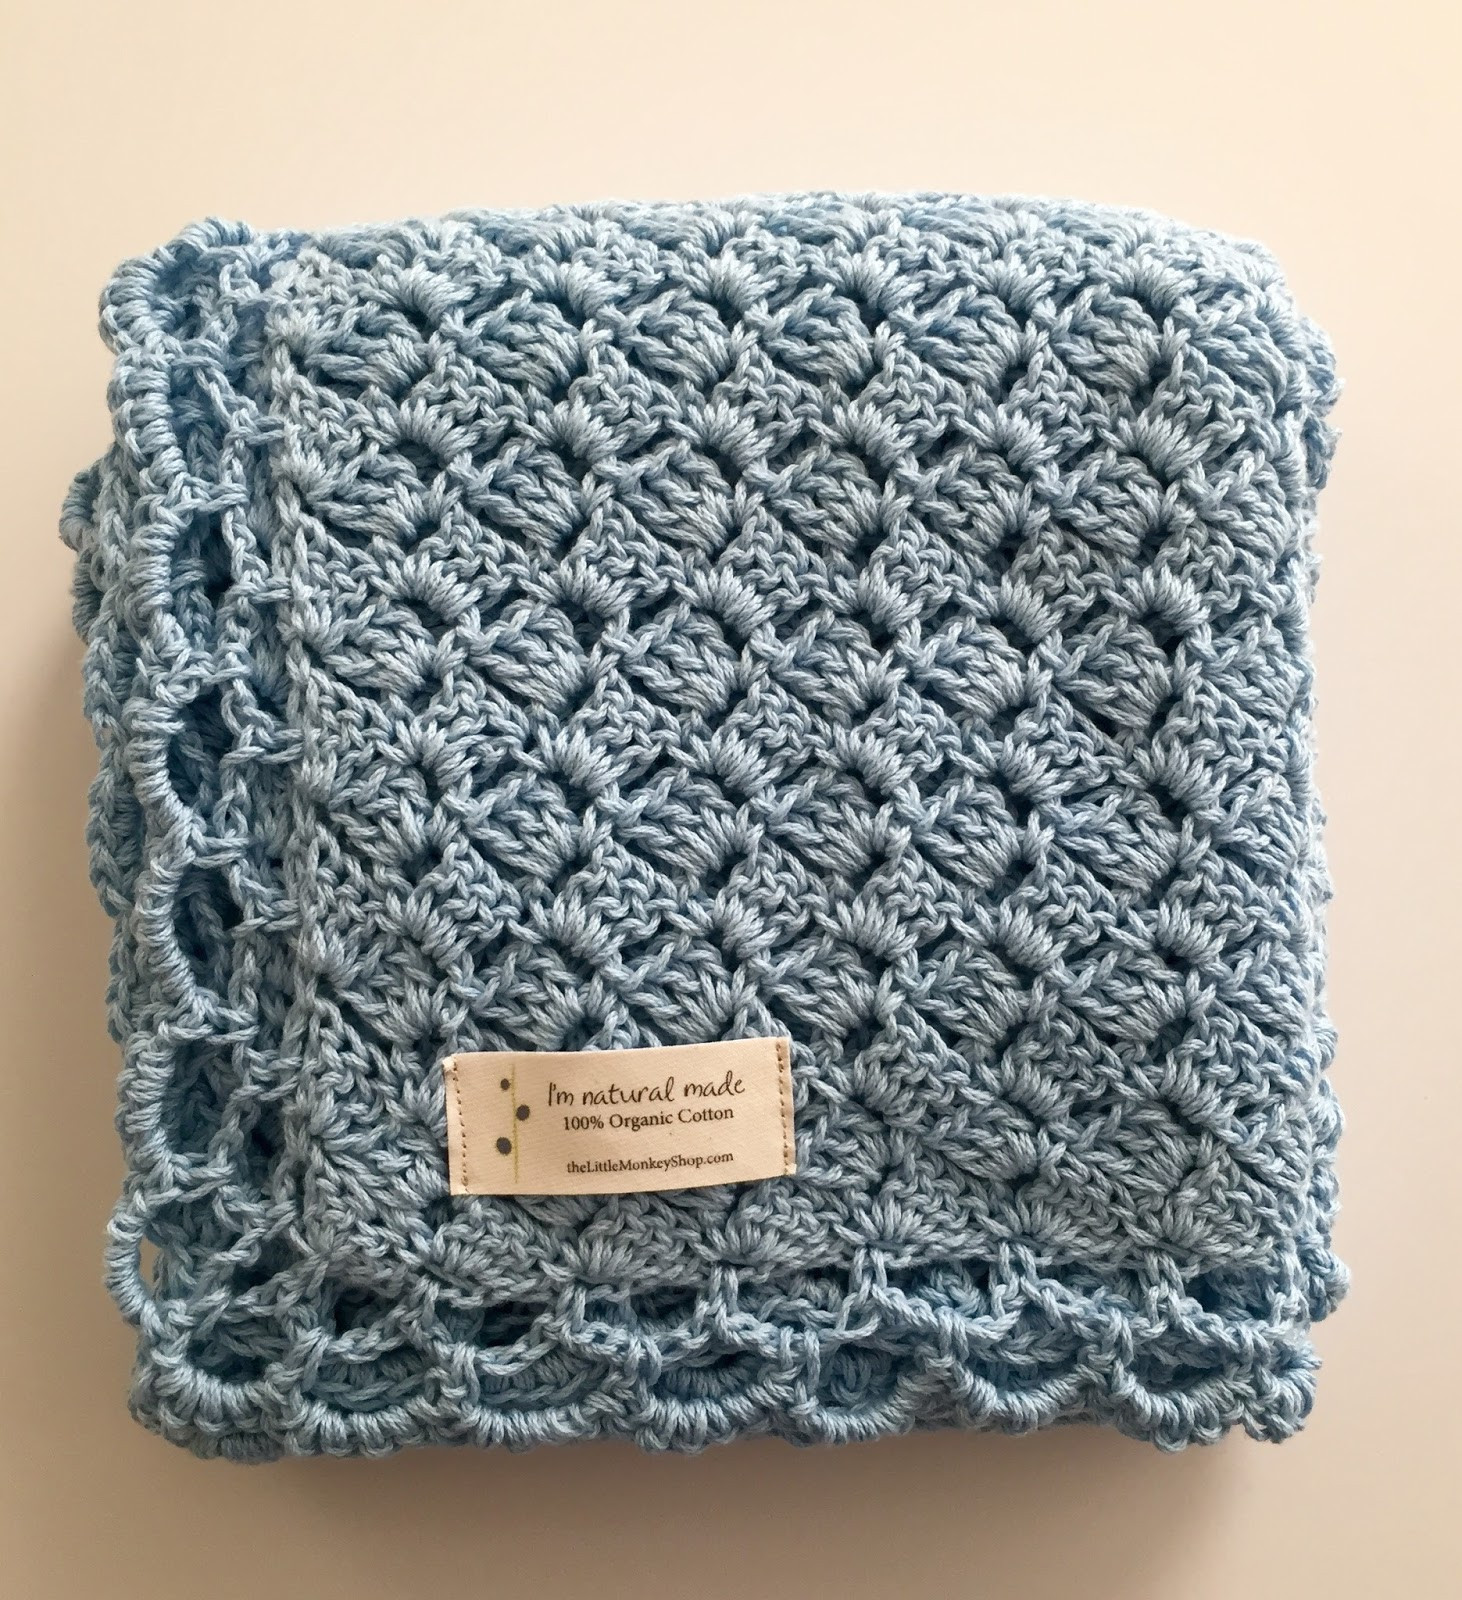 Awesome Appalachian Baby Design Yarn Review Little Monkey Shop Crochet Shop Of Lovely 48 Images Crochet Shop